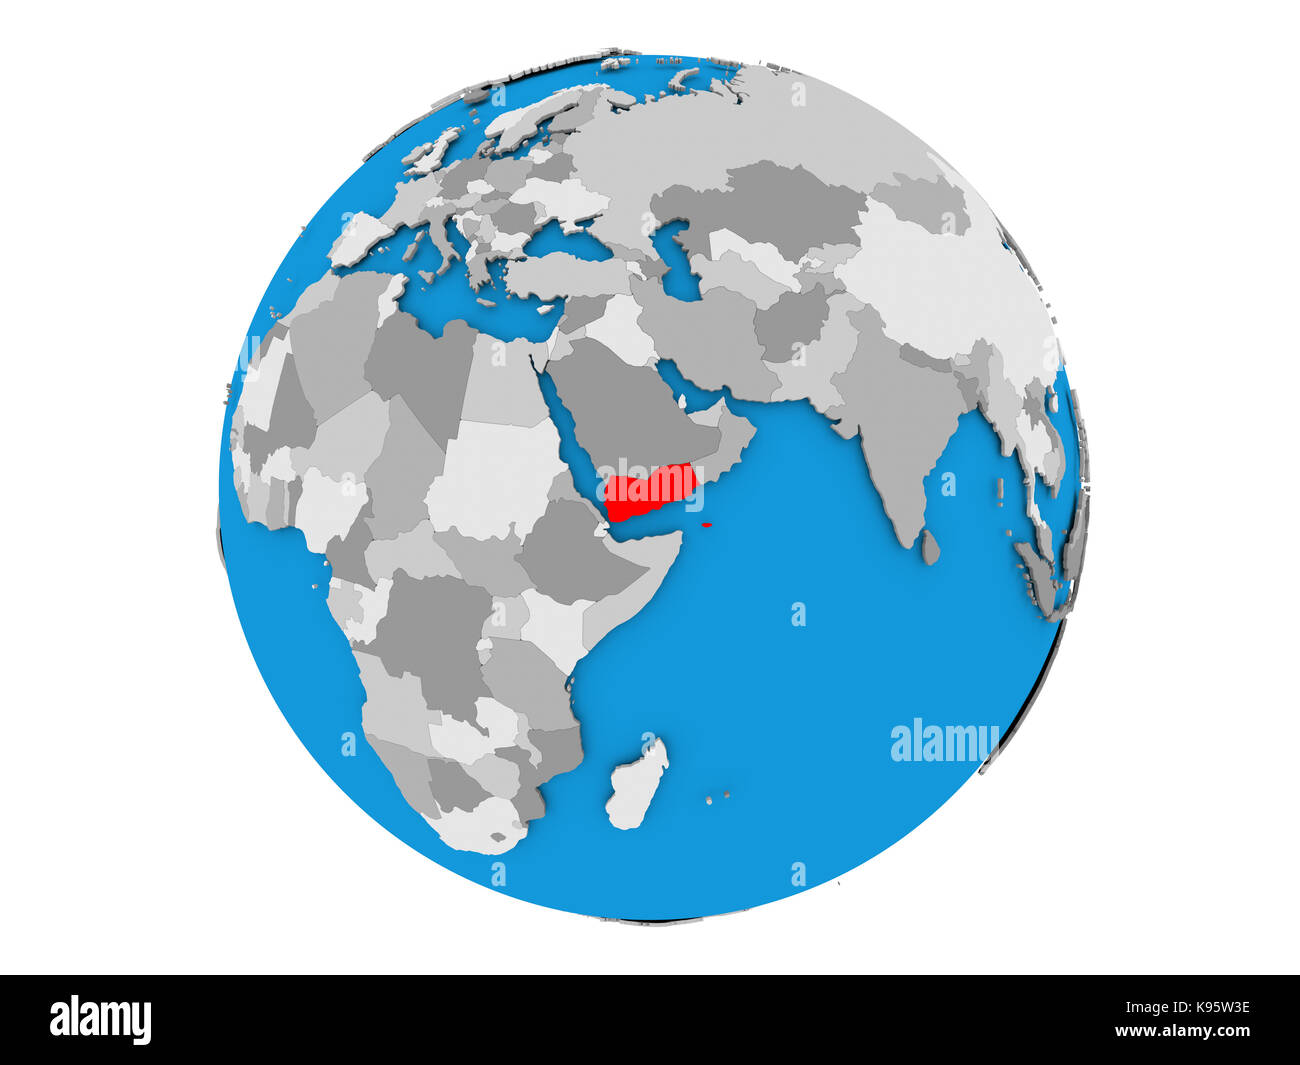 Yemen highlighted in red on political globe. 3D illustration isolated on white background. - Stock Image